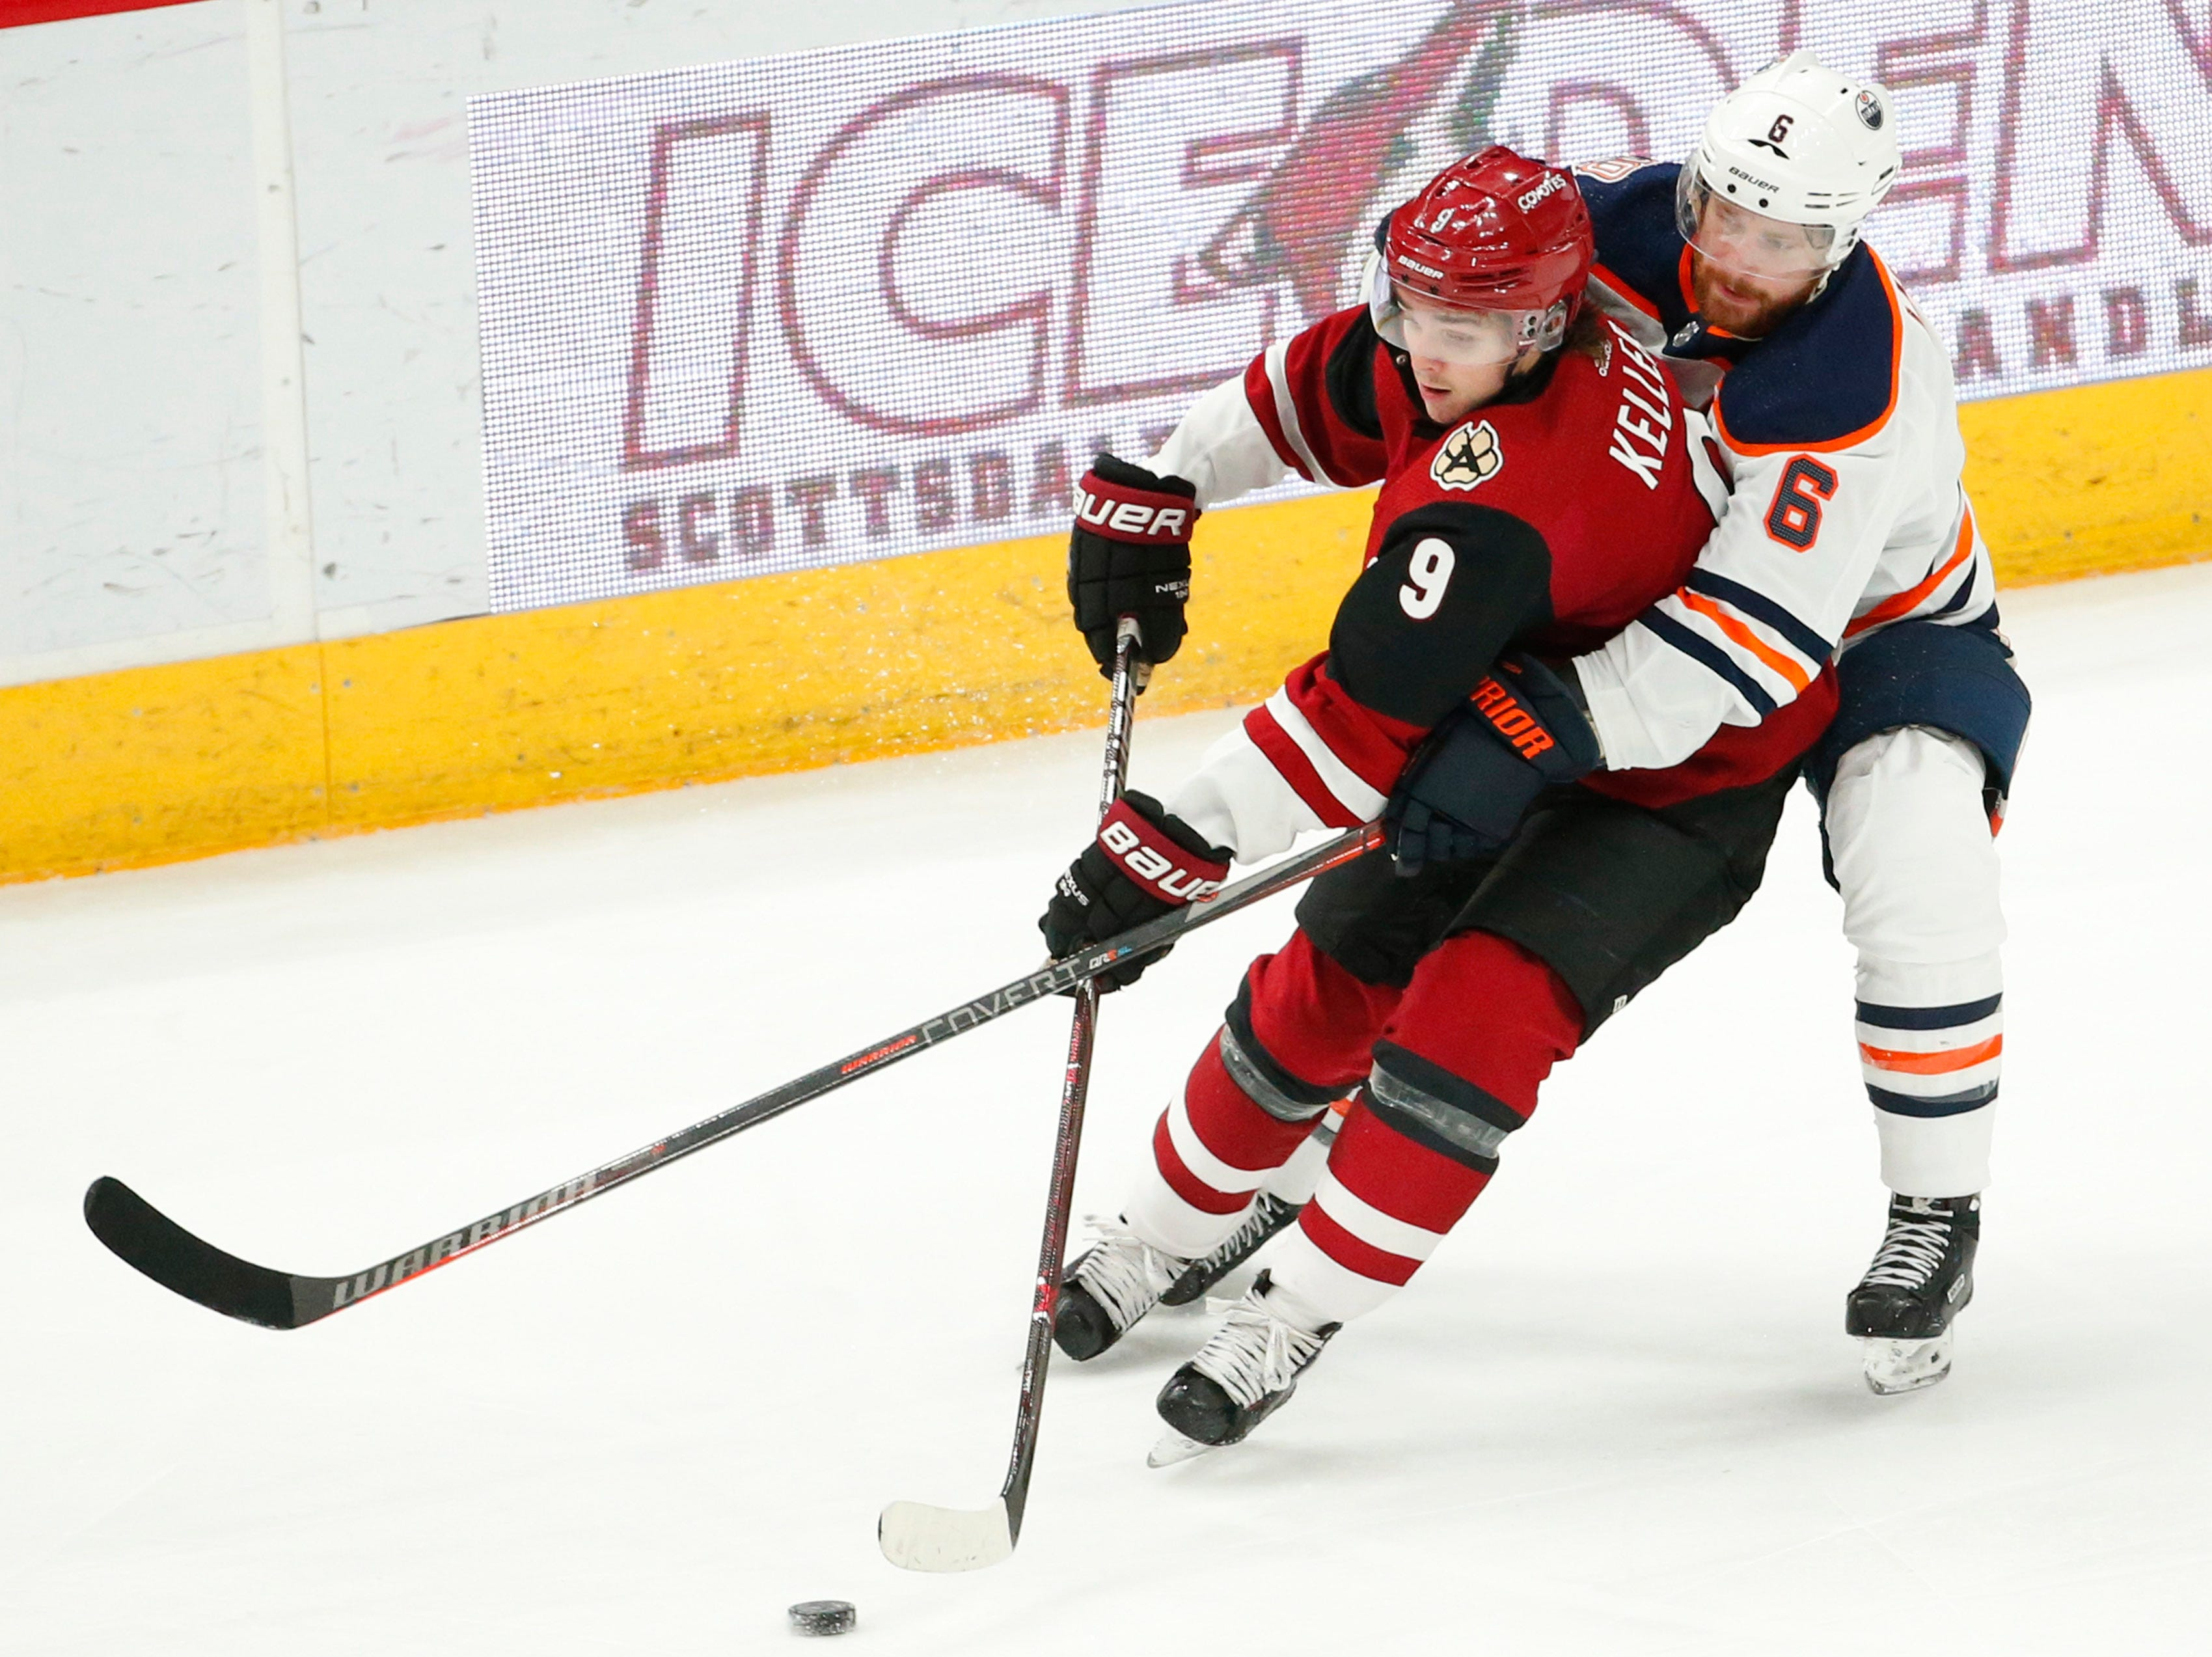 Arizona Coyotes center Clayton Keller (9) is defended by Edmonton Oilers defenseman Adam Larsson (6) during the third period in Glendale January 2, 2019.